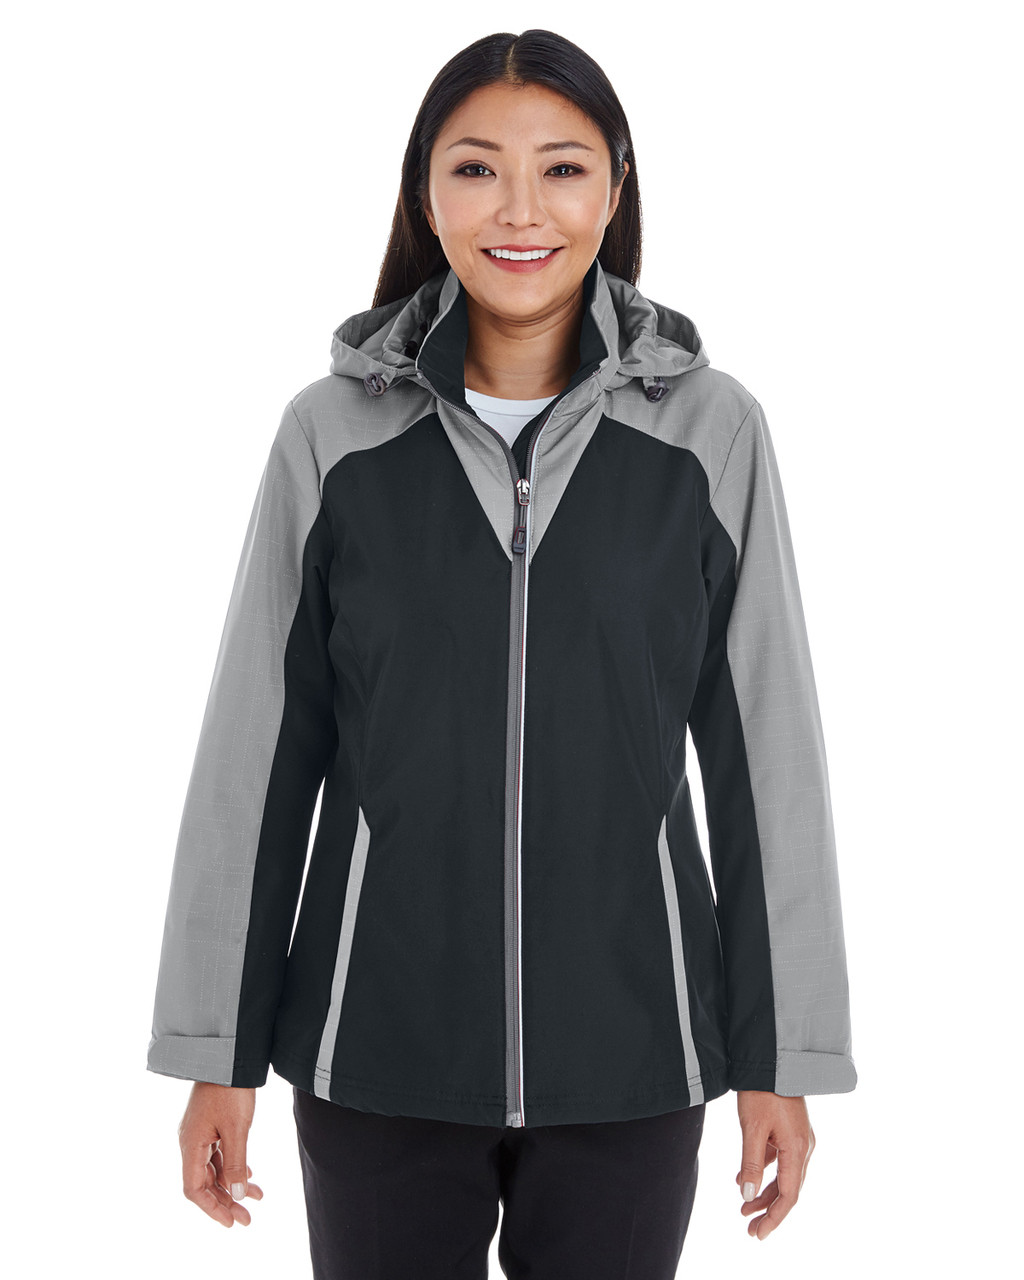 Black/Grey/Grey - FRONT - NE700W Ash City - North End Ladies' Embark Colorblock Interactive Shell Jacket with Reflective Printed Panels | Blankclothing.ca